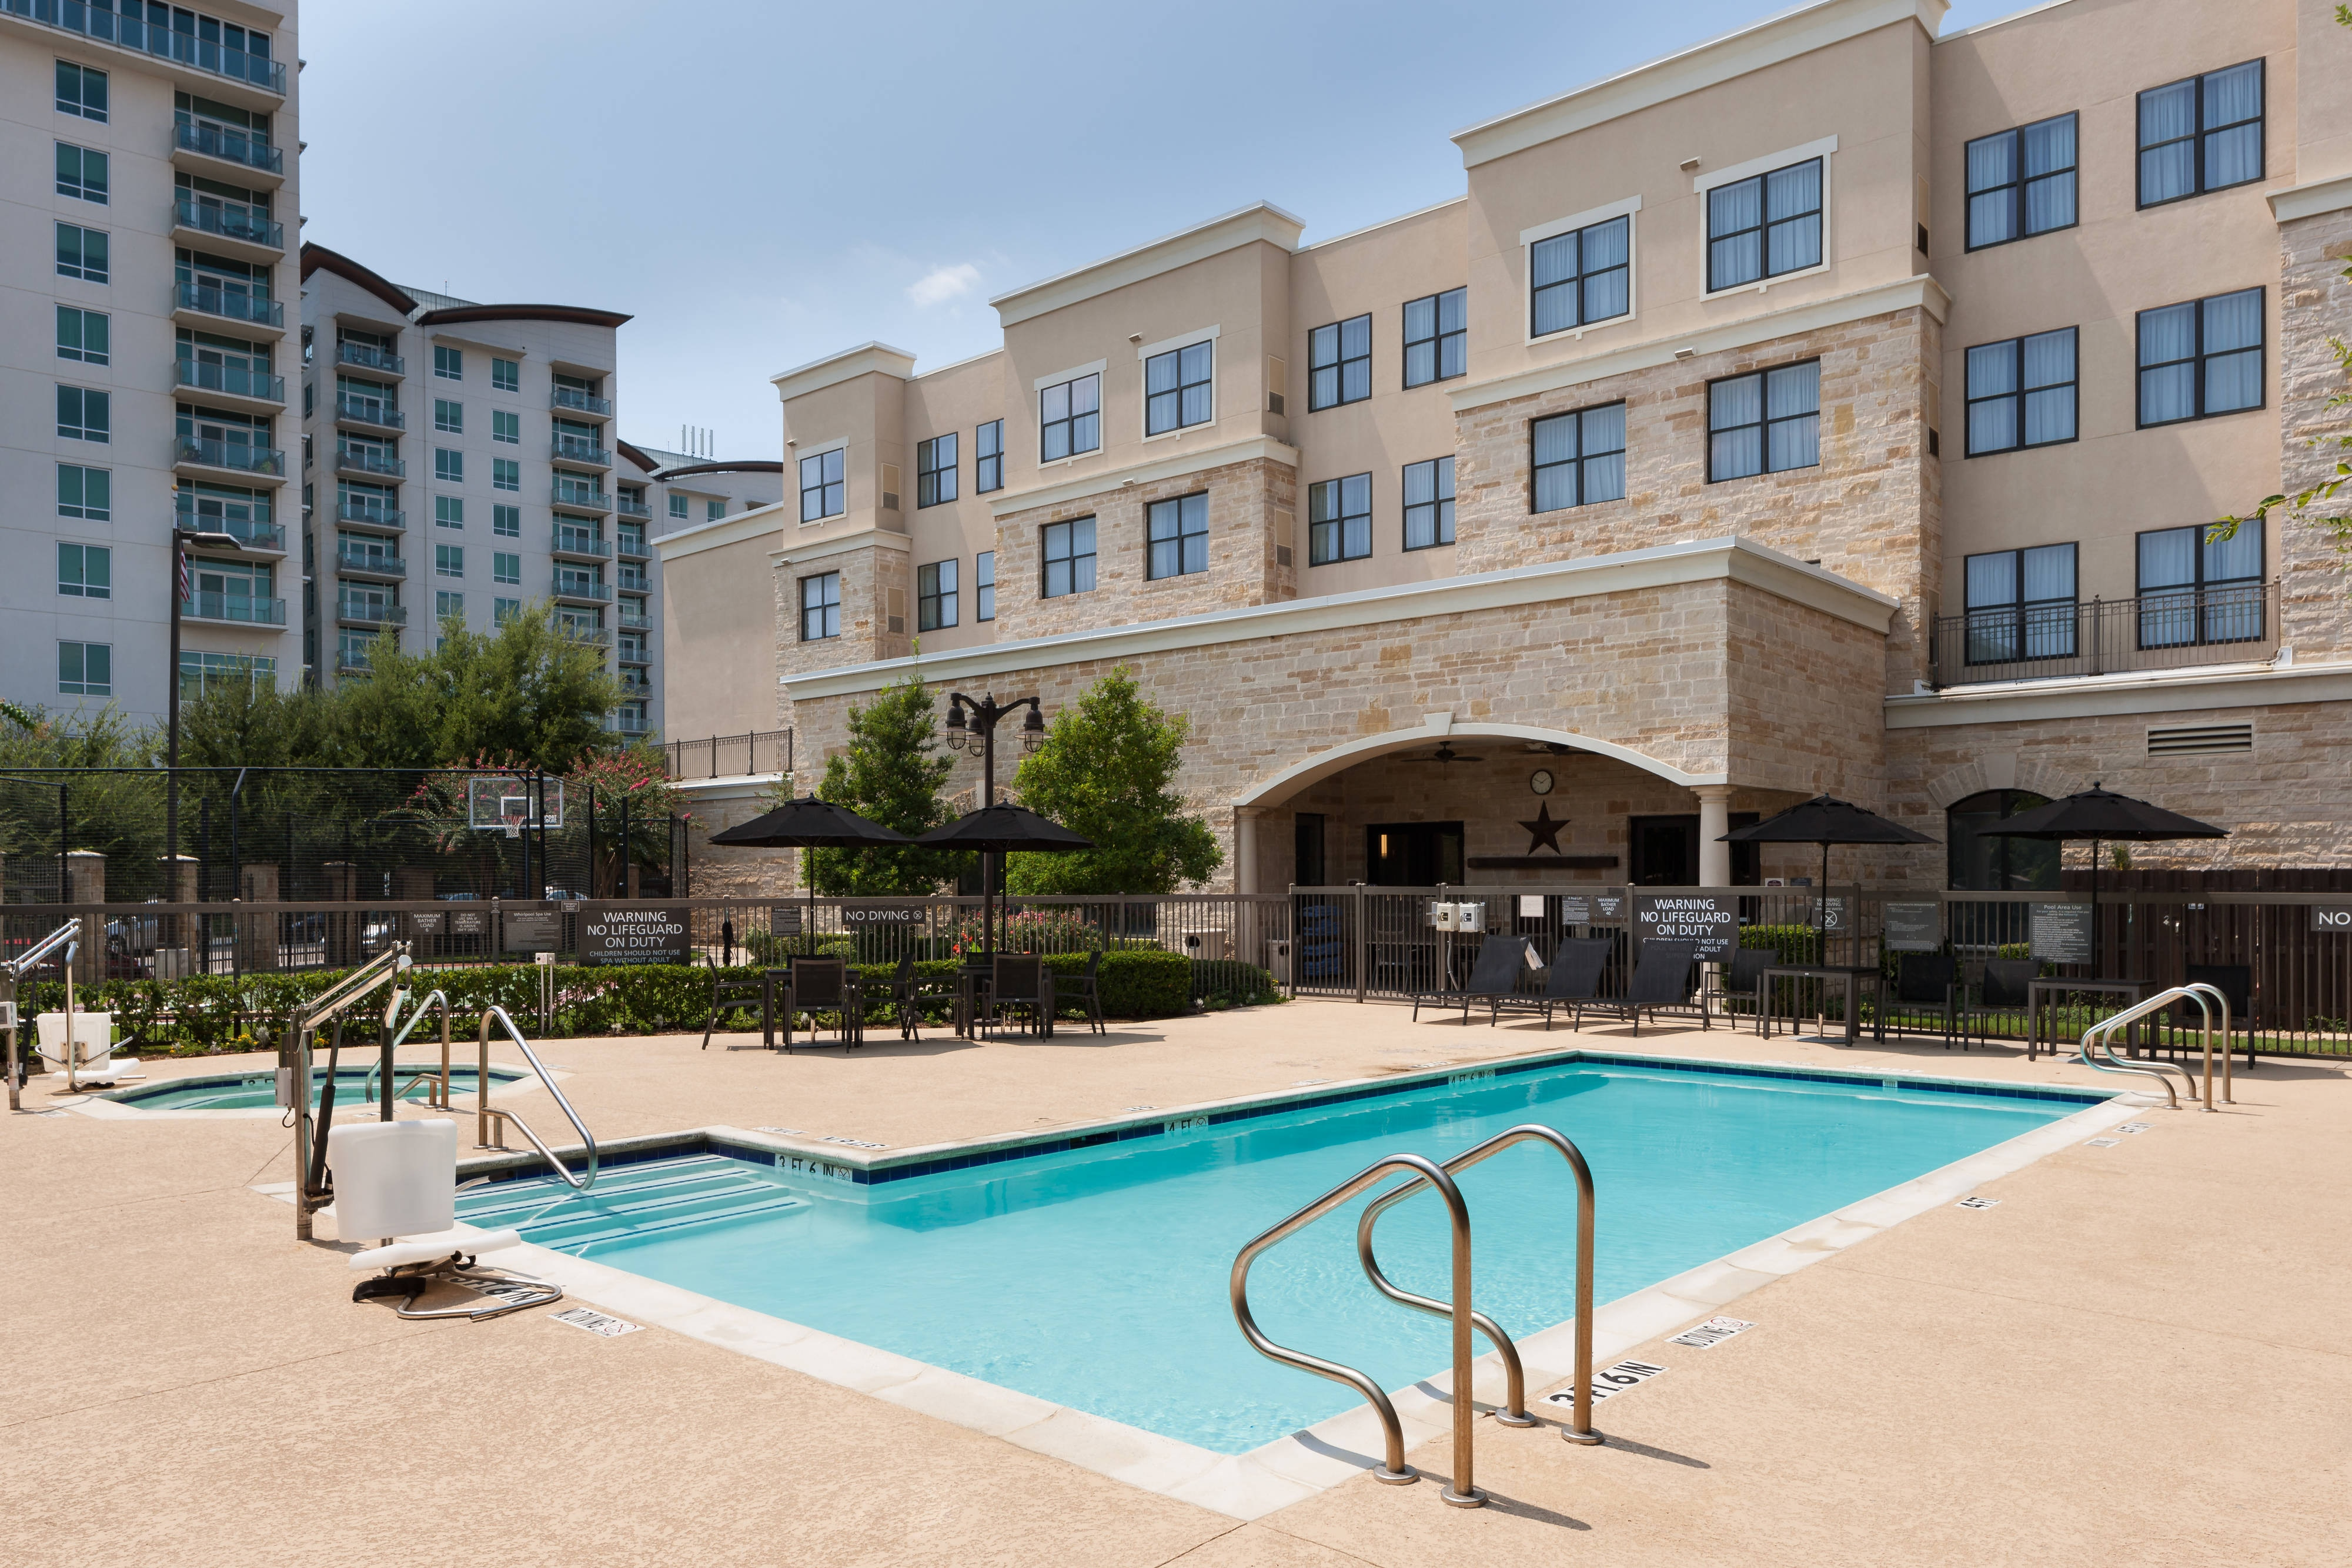 Residence Inn Fort Worth Cultural Pool